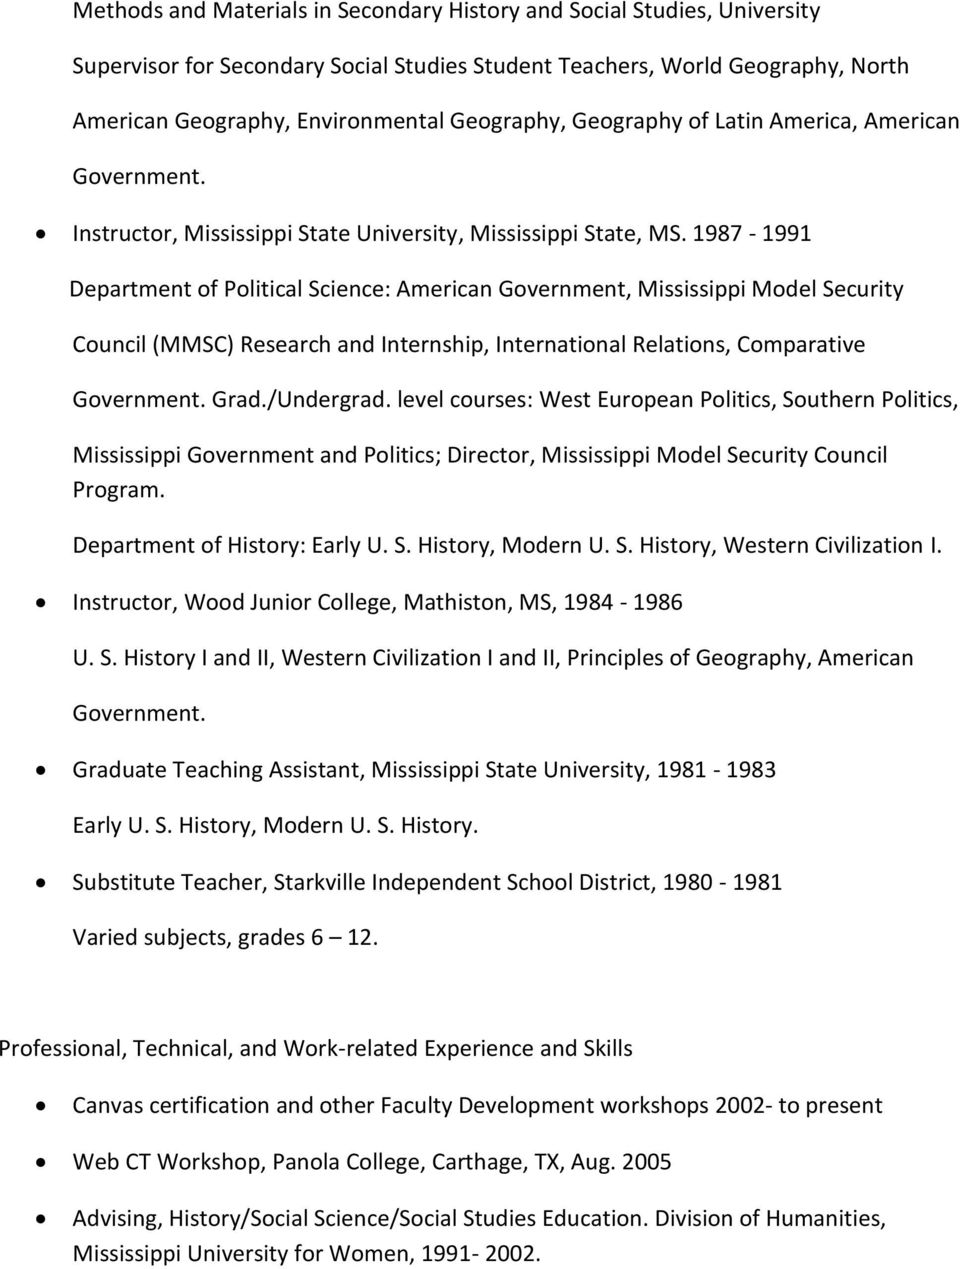 1987-1991 Department of Political Science: American Government, Mississippi Model Security Council (MMSC) Research and Internship, International Relations, Comparative Government. Grad./Undergrad.